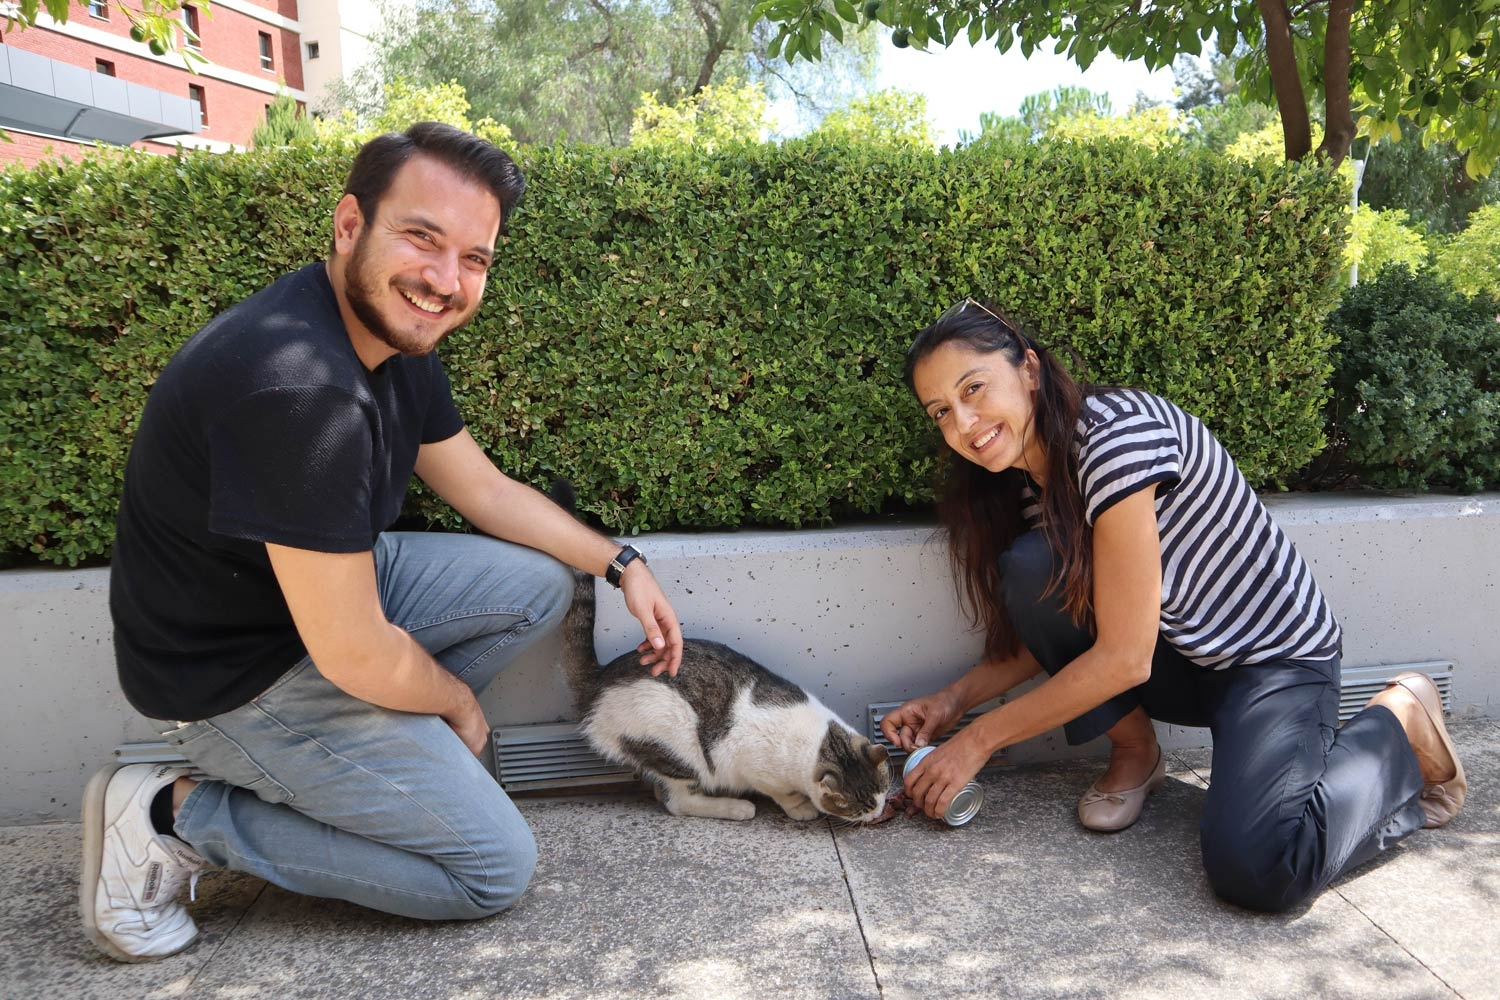 Caring for stray animals on campus